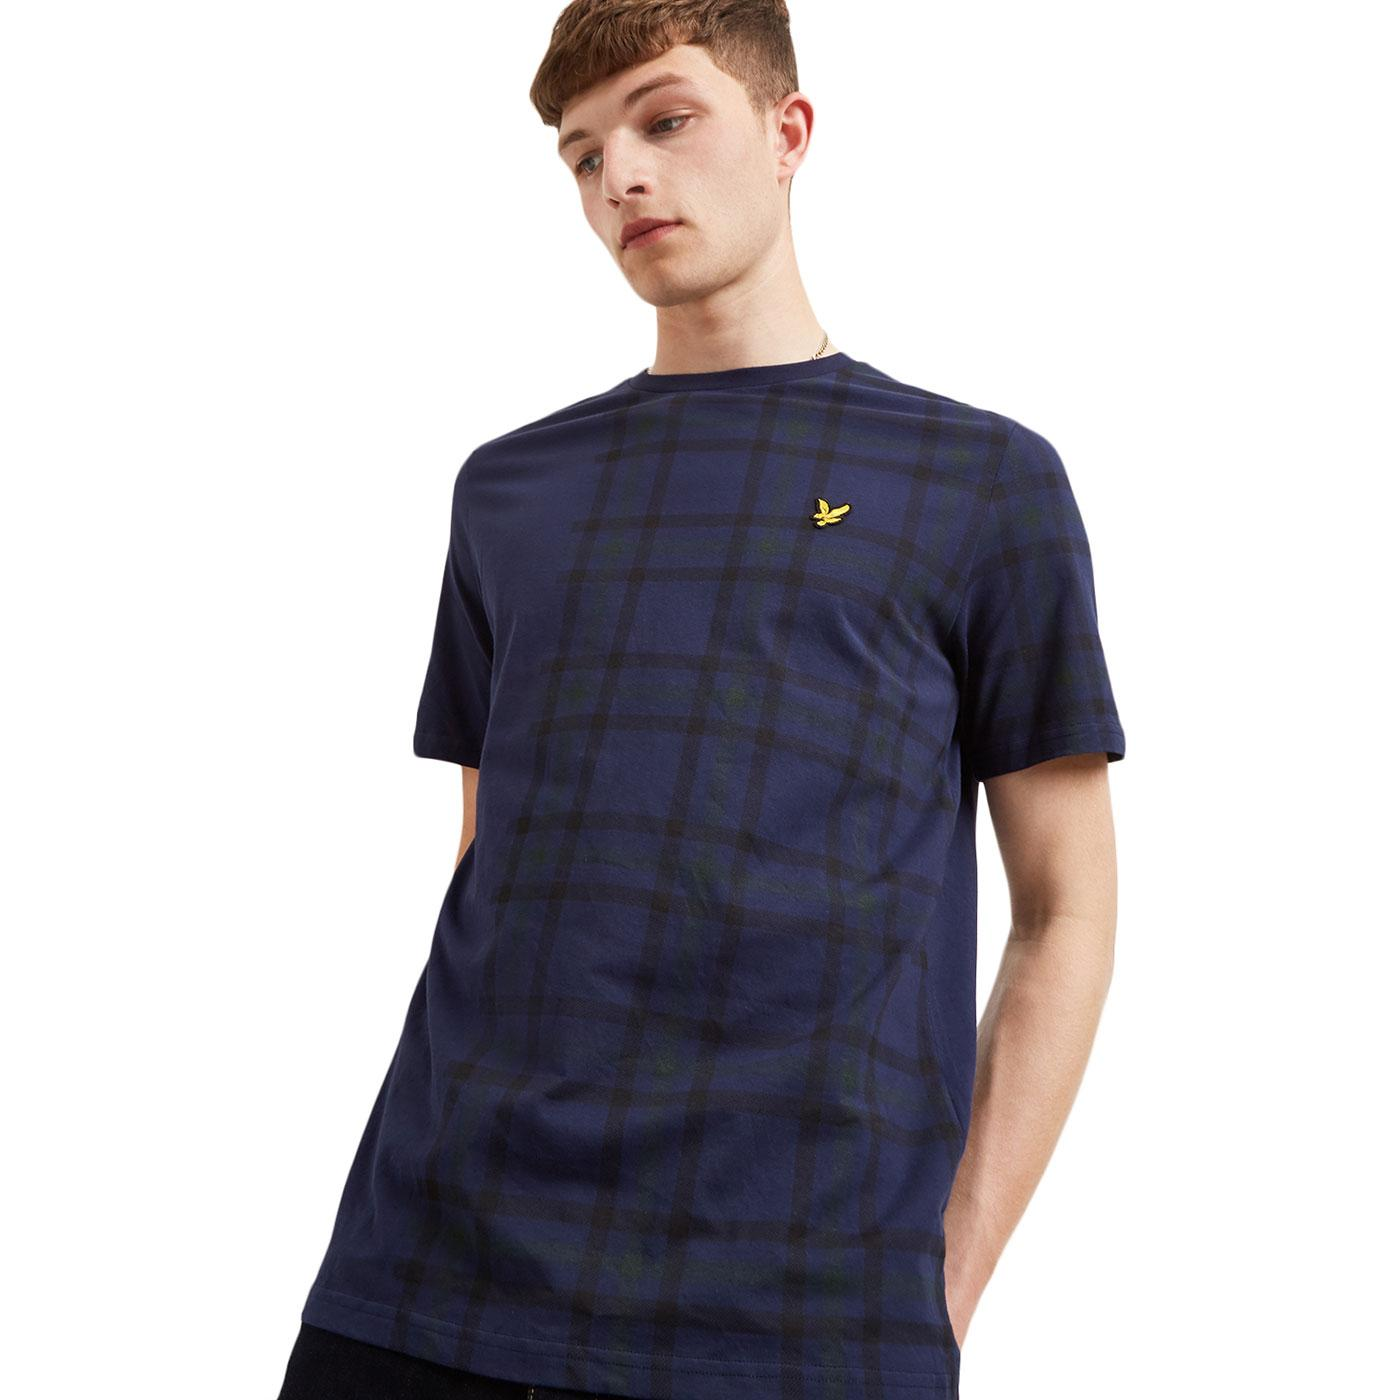 LYLE & SCOTT Retro 70s Tartan Block Check Tee NAVY